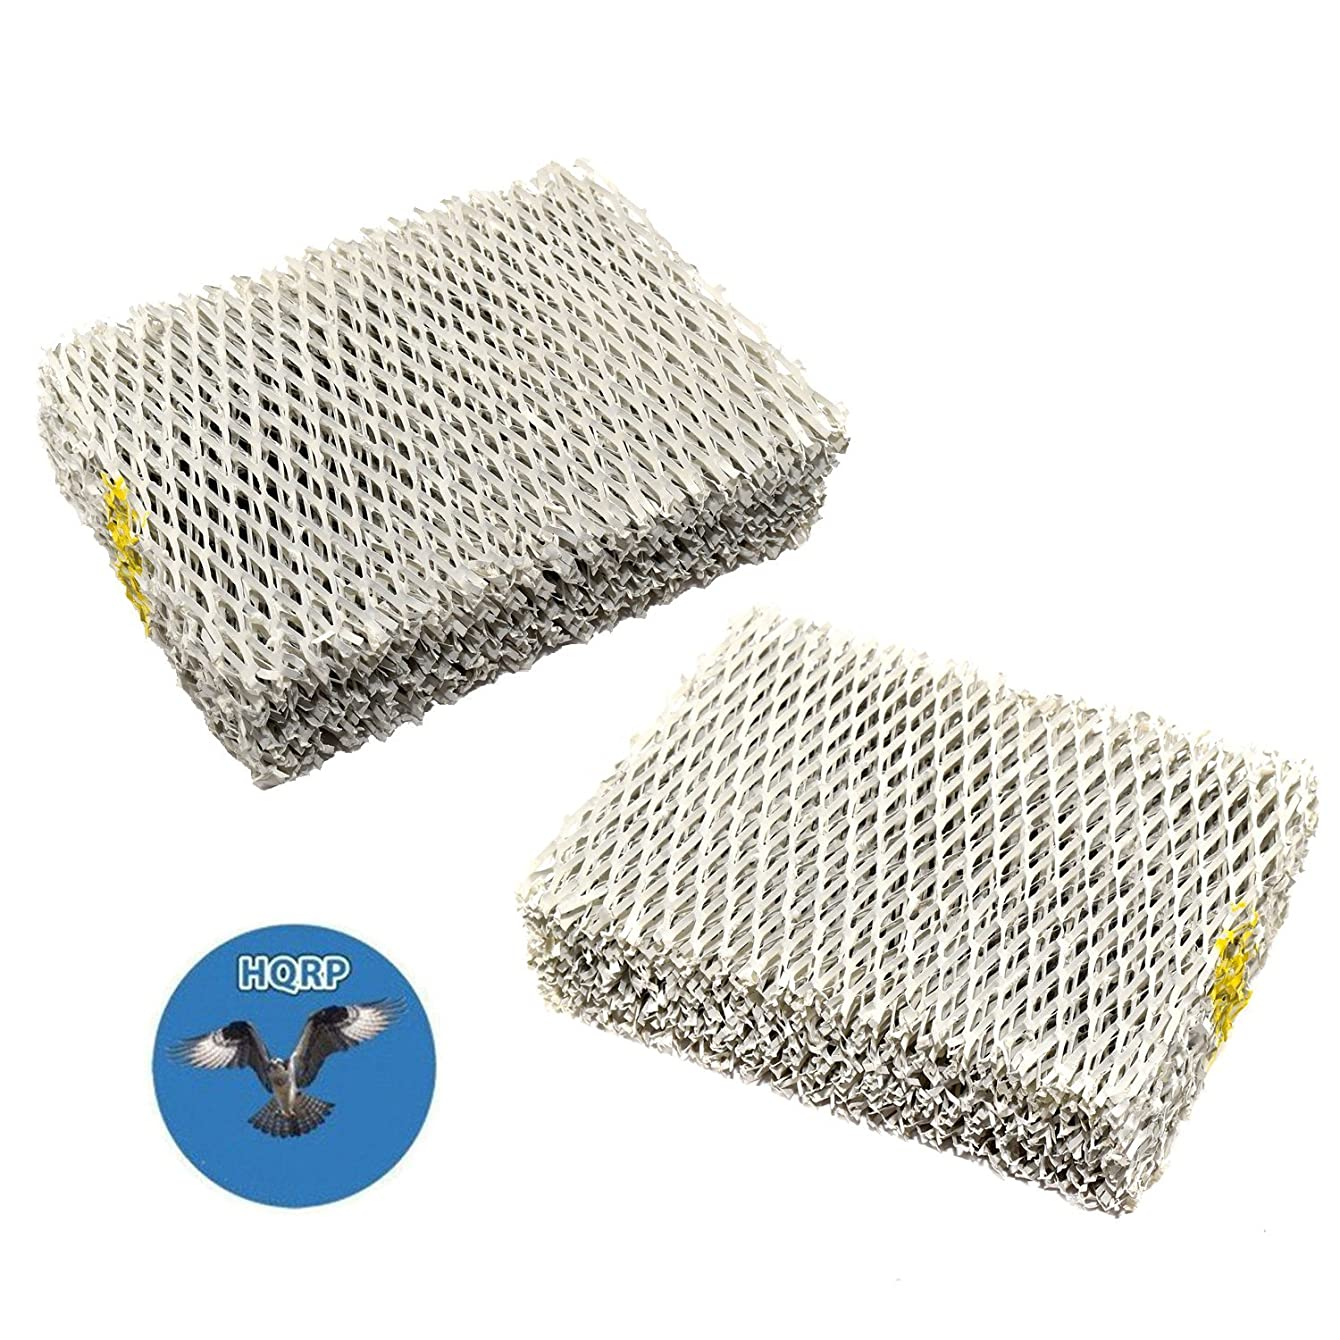 HQRP 2-pack Humidifier Wick Filter for Hunter 31941 94124 Replacement fits Hunter 33201, 33202, 33204, 33222, 33223 Humidifiers + HQRP Coaster